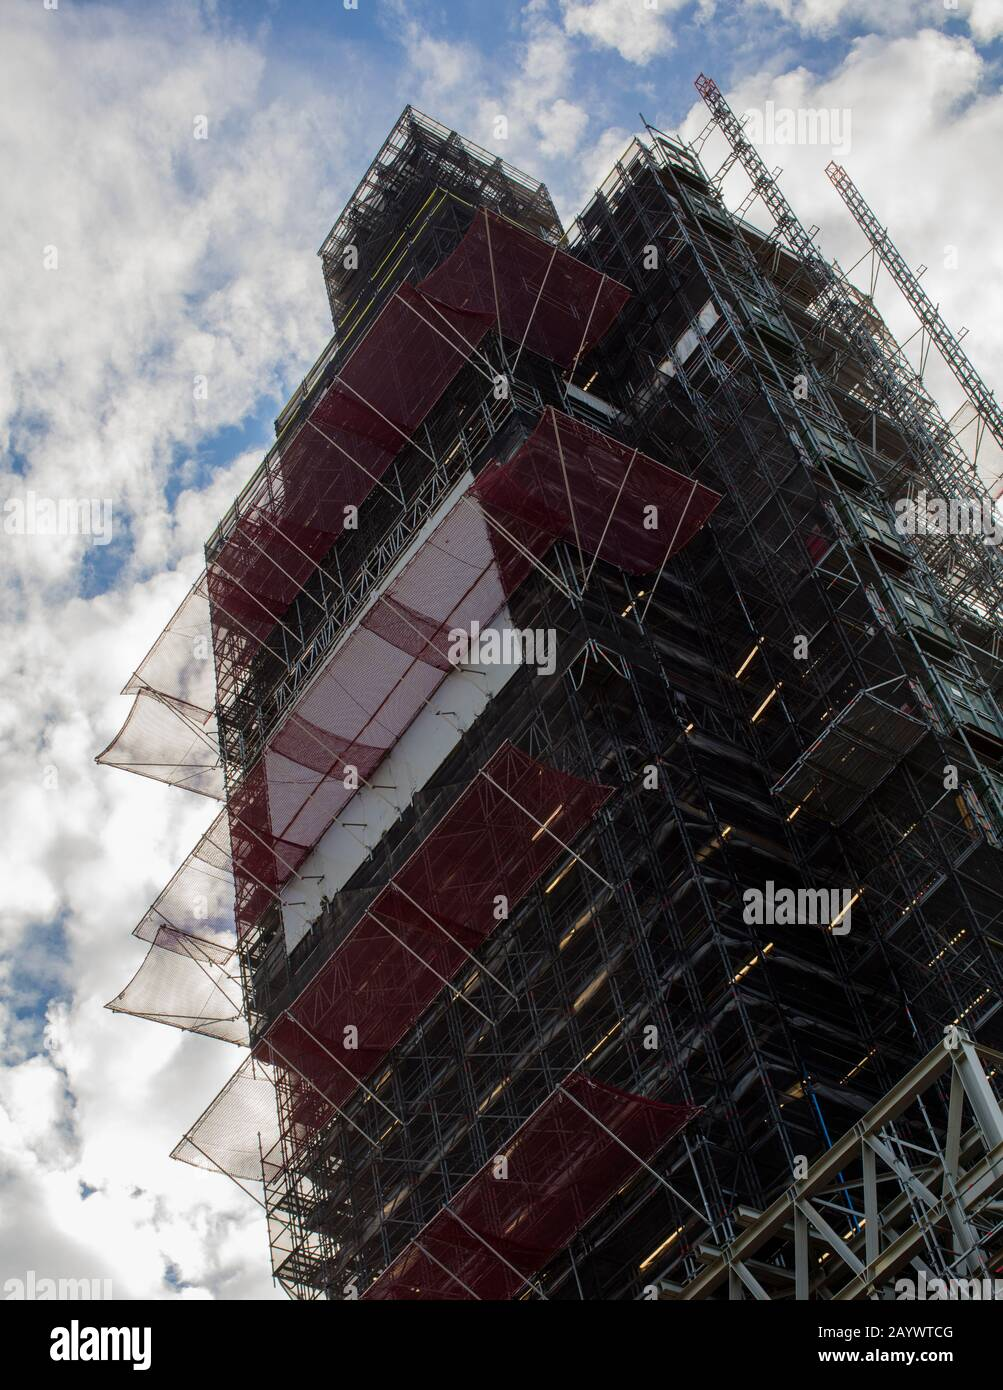 Elizabeth Tower, formerly the Clock Tower, often called Big Ben,in the Palace of Westminster, London, under scaffolding for refurbishment Stock Photo